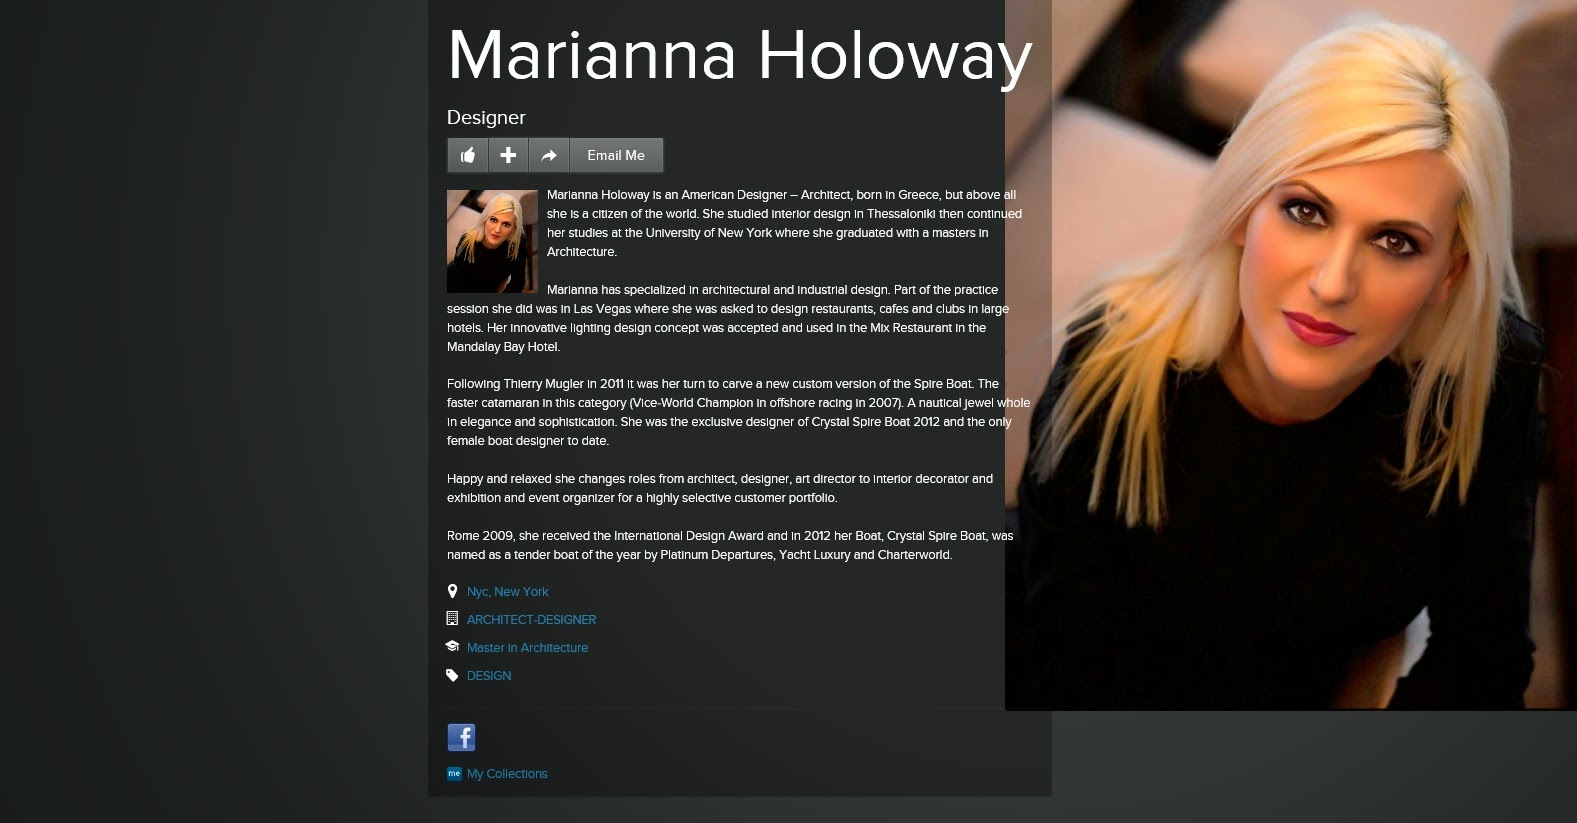 An image of Marianna Holoway, Architect & Designer